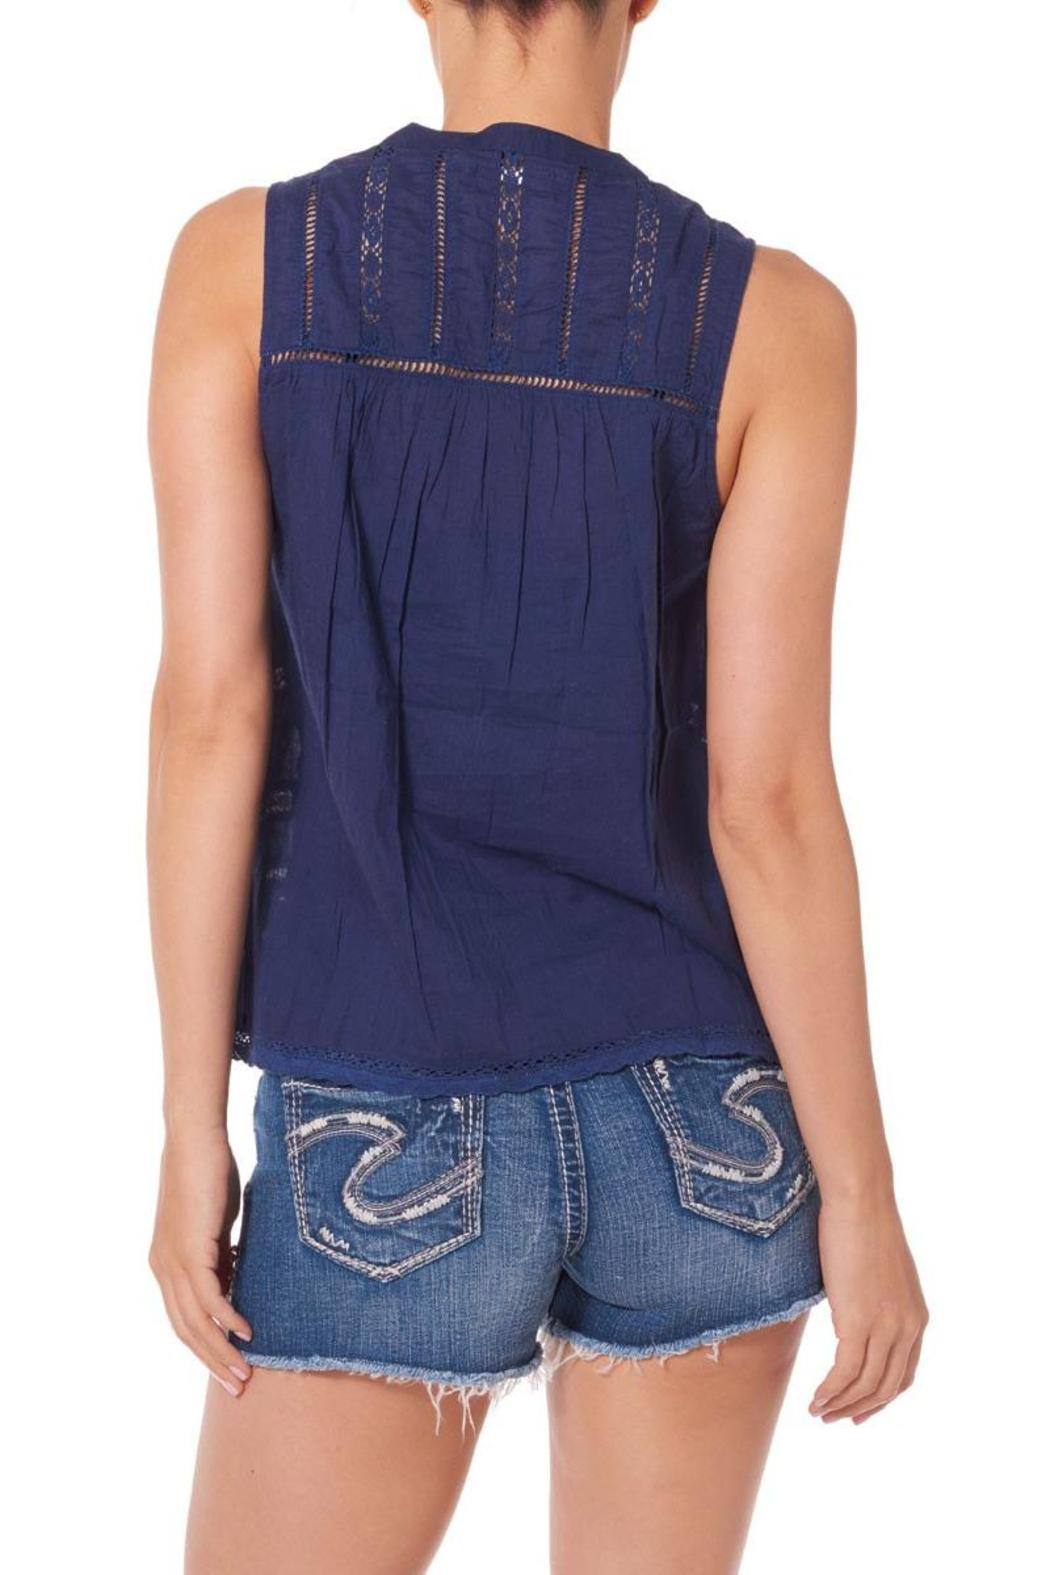 Silver Jeans Co. Crochet Lace Tank Navy - Front Cropped Image